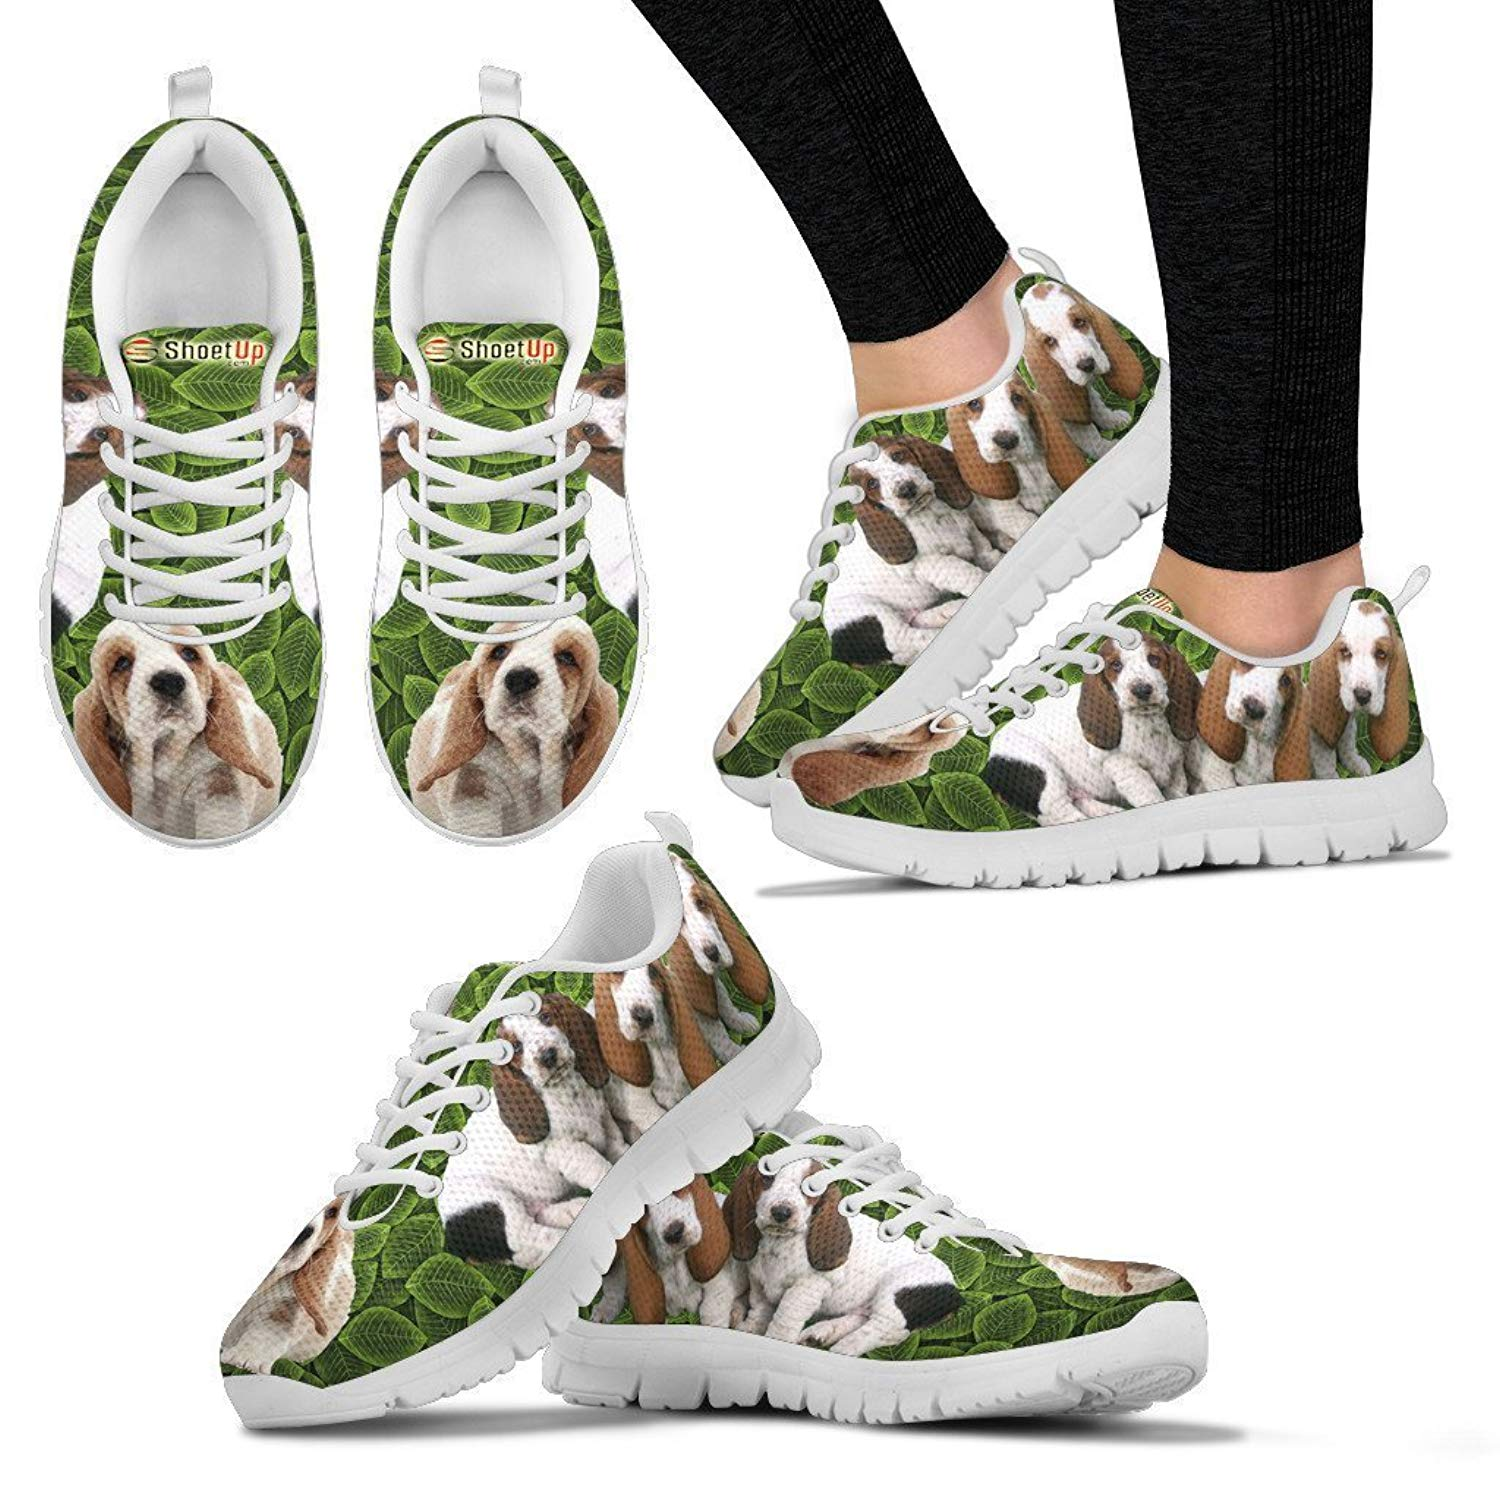 PetByYou Wome's Running Shoes – LigWome's Running Shoes – Lightweight Breathable Mesh Fabric Fashion Sneakers For Woman – Snug Fit Lace Closure Women Athletic Shoes With Basset Hound On Green Design